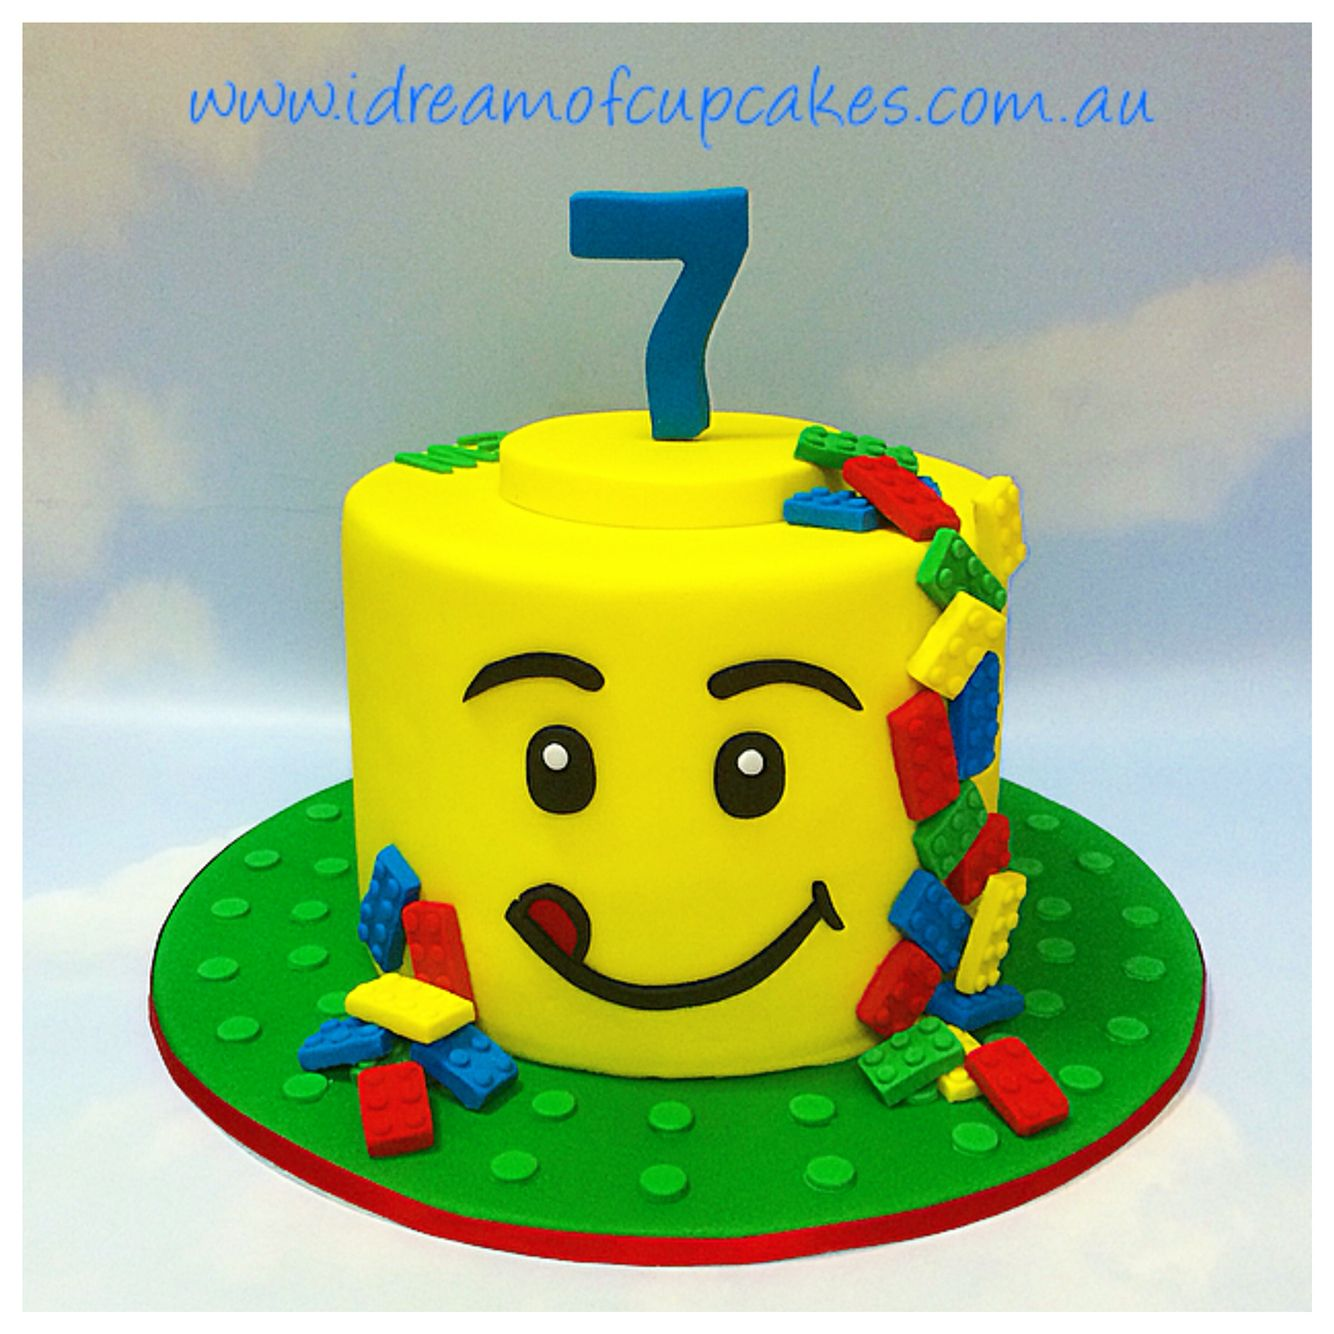 Lego Head Cake Lego Birthday Cake Lego Head Cake Boy Birthday Cake